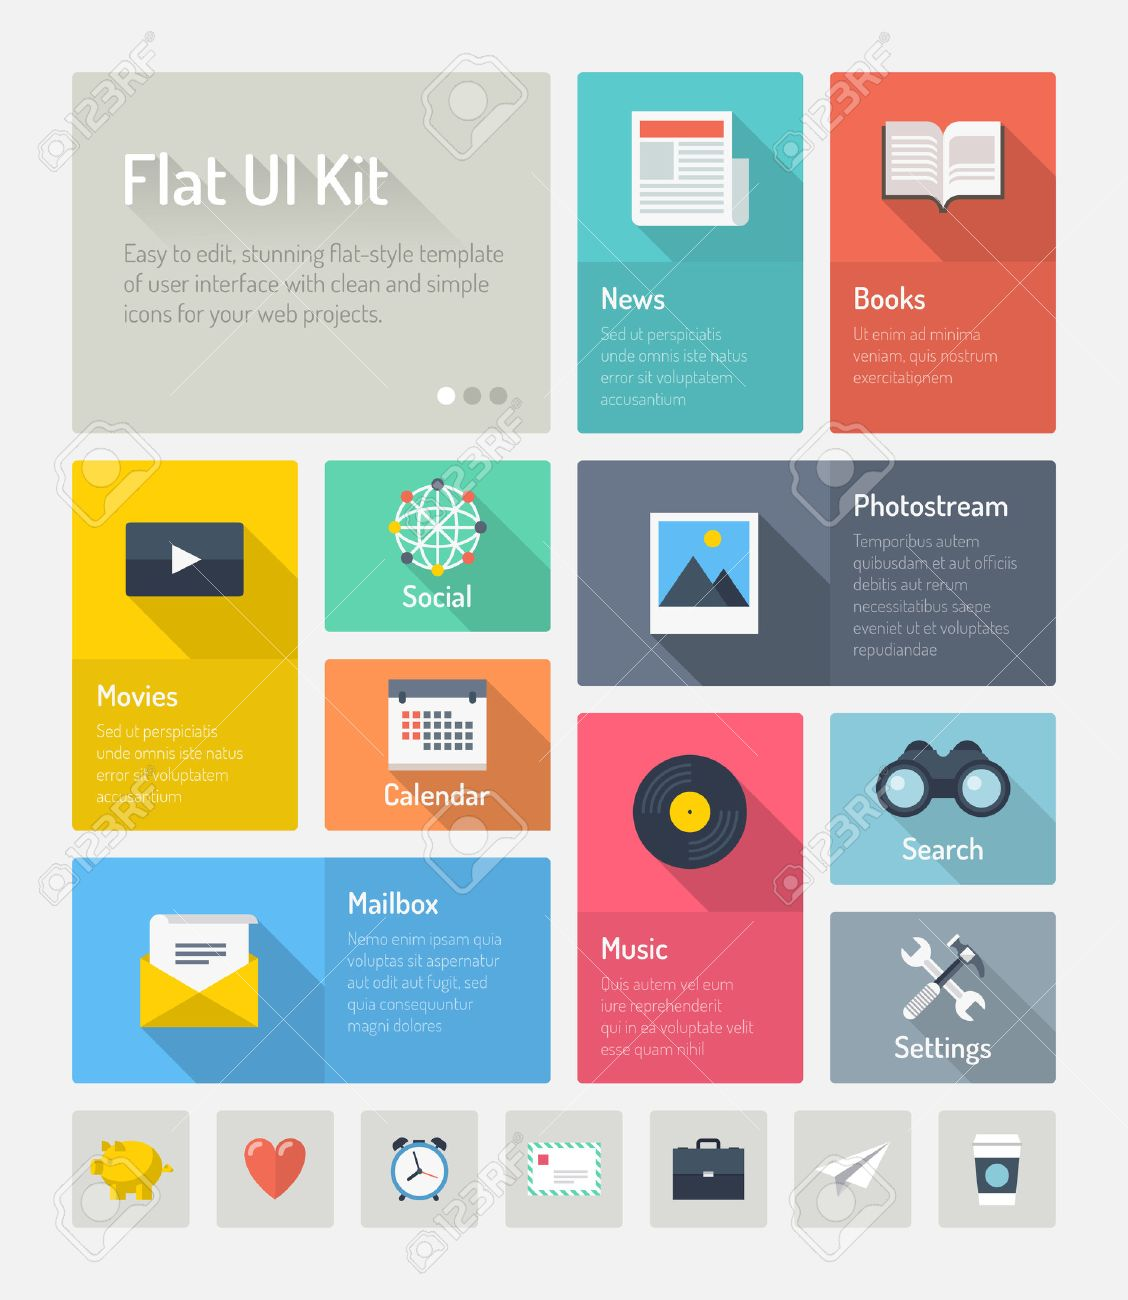 Flat design modern vector illustration concept of minimalistic stylish infographic webpage elements with icons set or abstract metro user interface kit with simple navigation for web project  Isolated on light gray background Stock Vector - 25125822